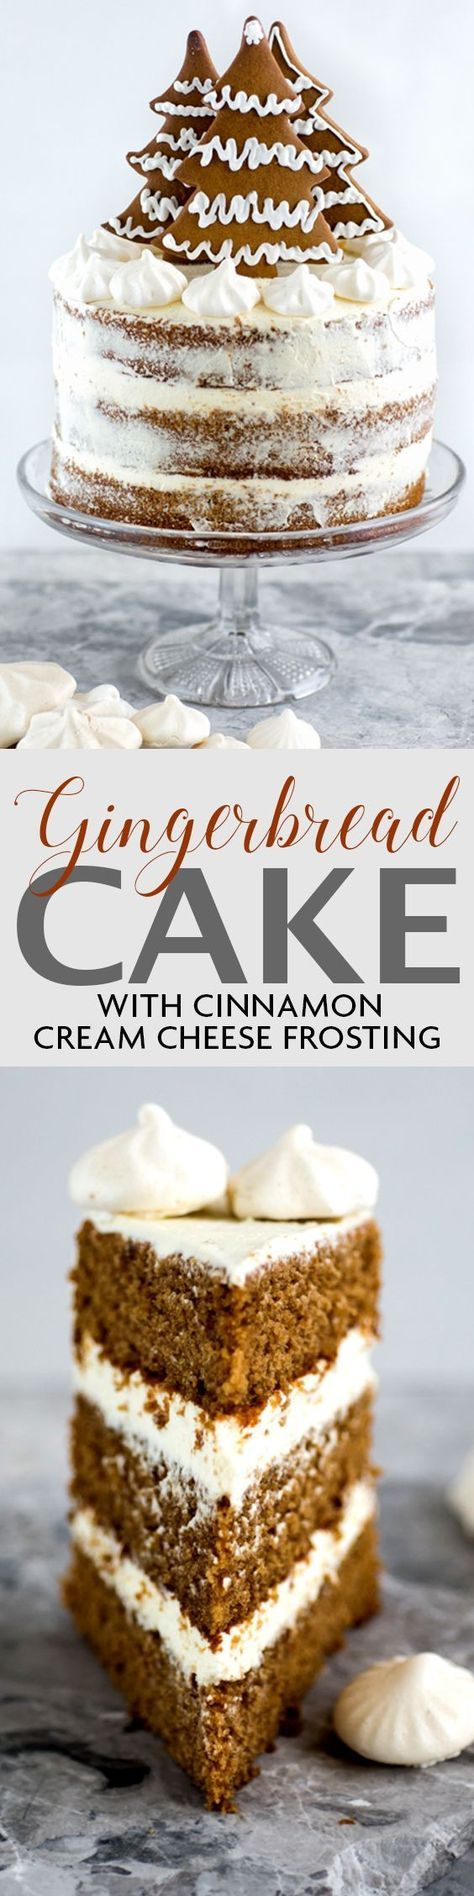 Gingerbread layer cake with cinnamon cream cheese frosting and gingerbread…